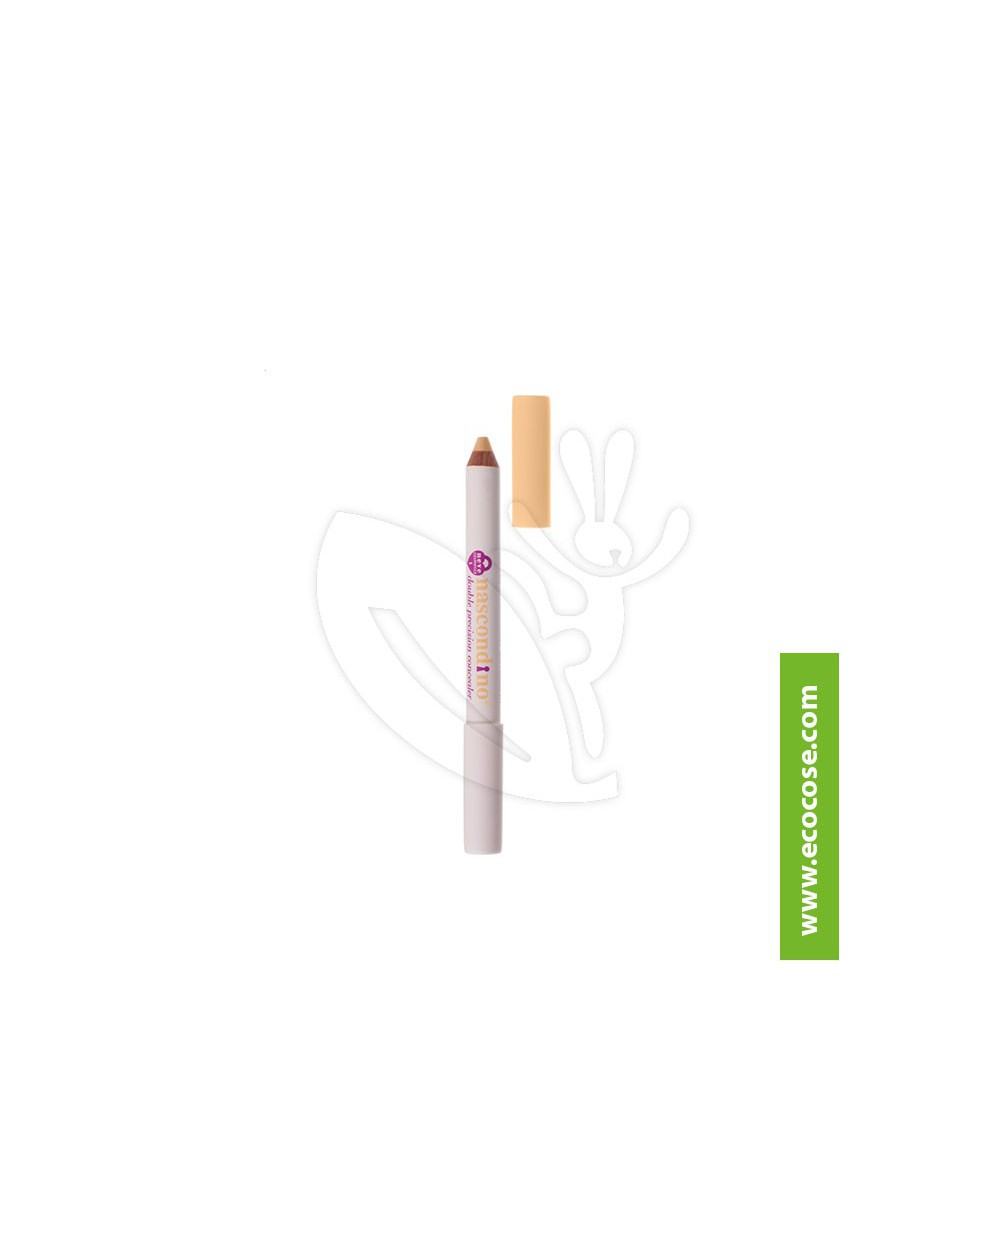 Neve Cosmetics - Nascondino Double Precision concealer - Fair